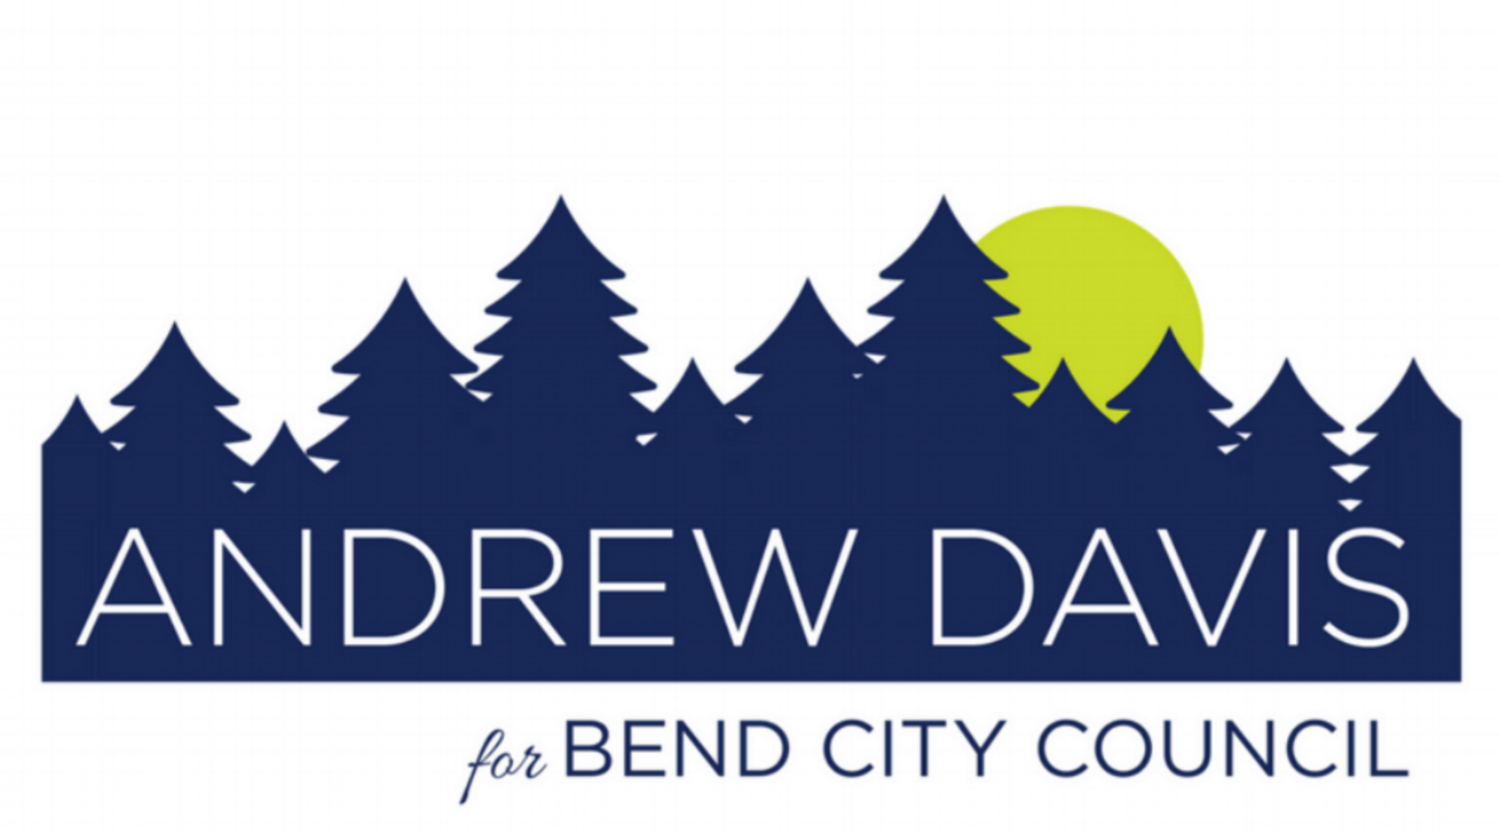 Andrew Davis for Bend City Council